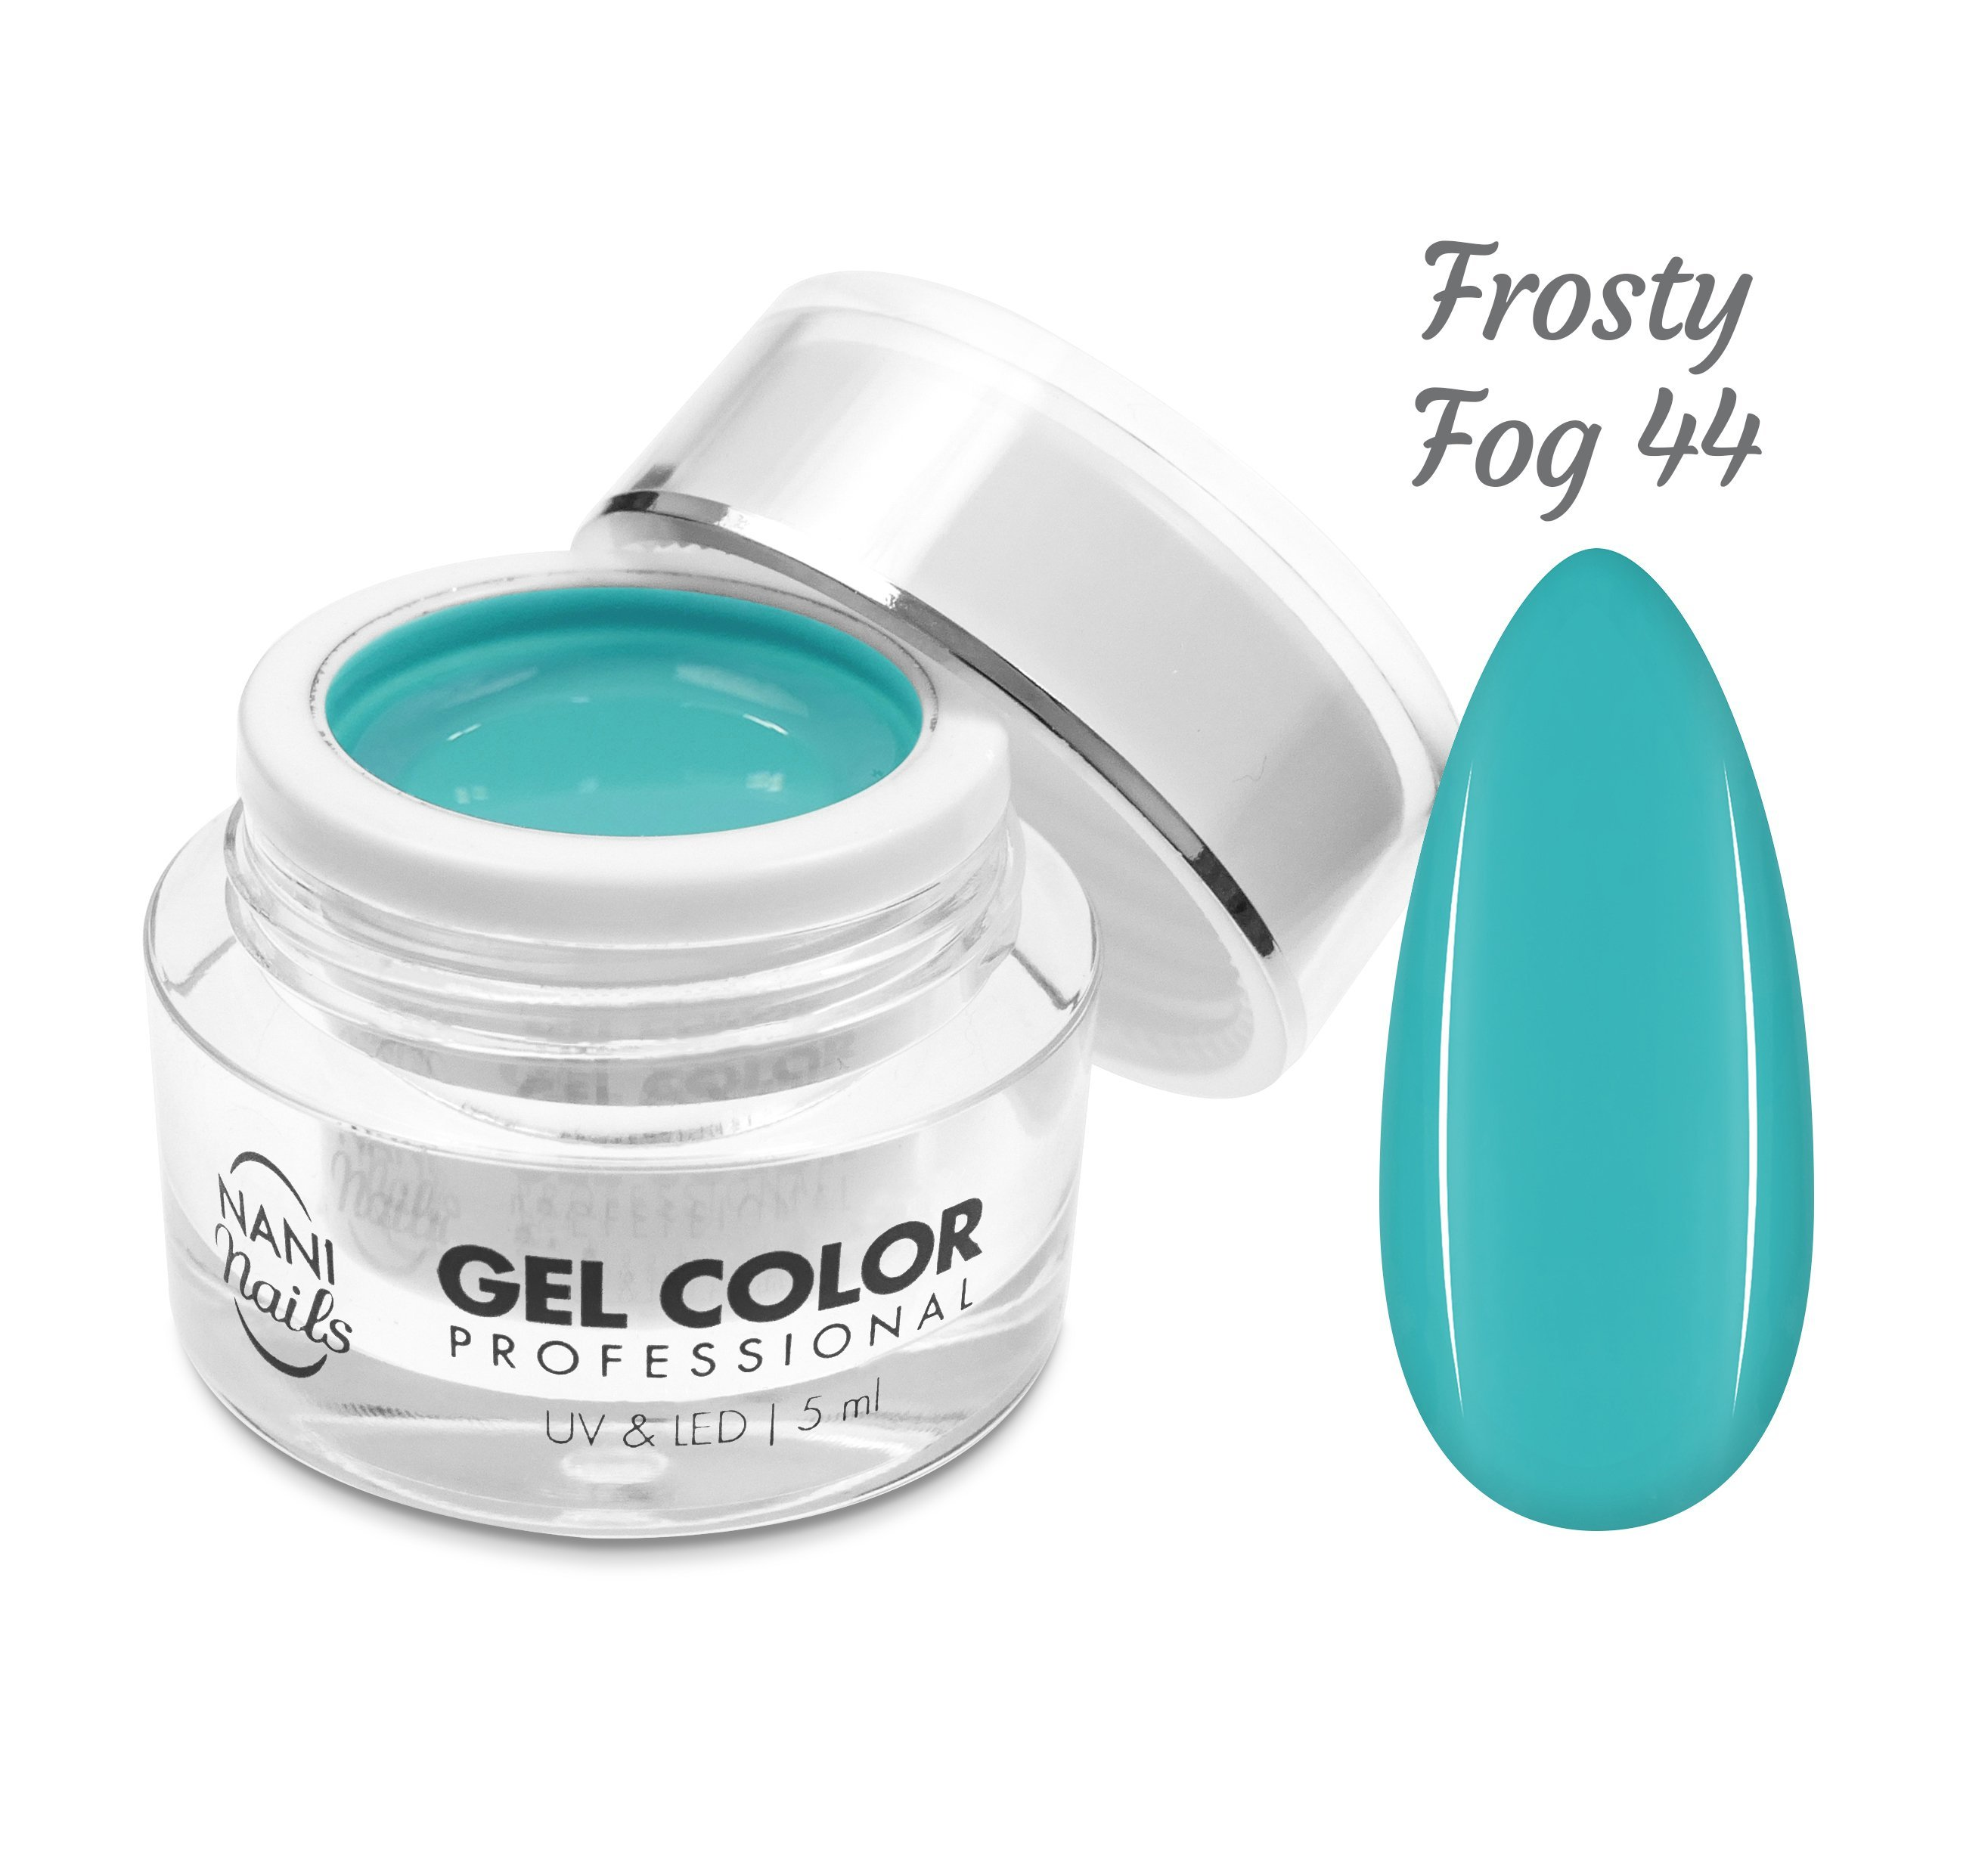 NANI UV/LED gél Professional 5 ml - Frosty Fog